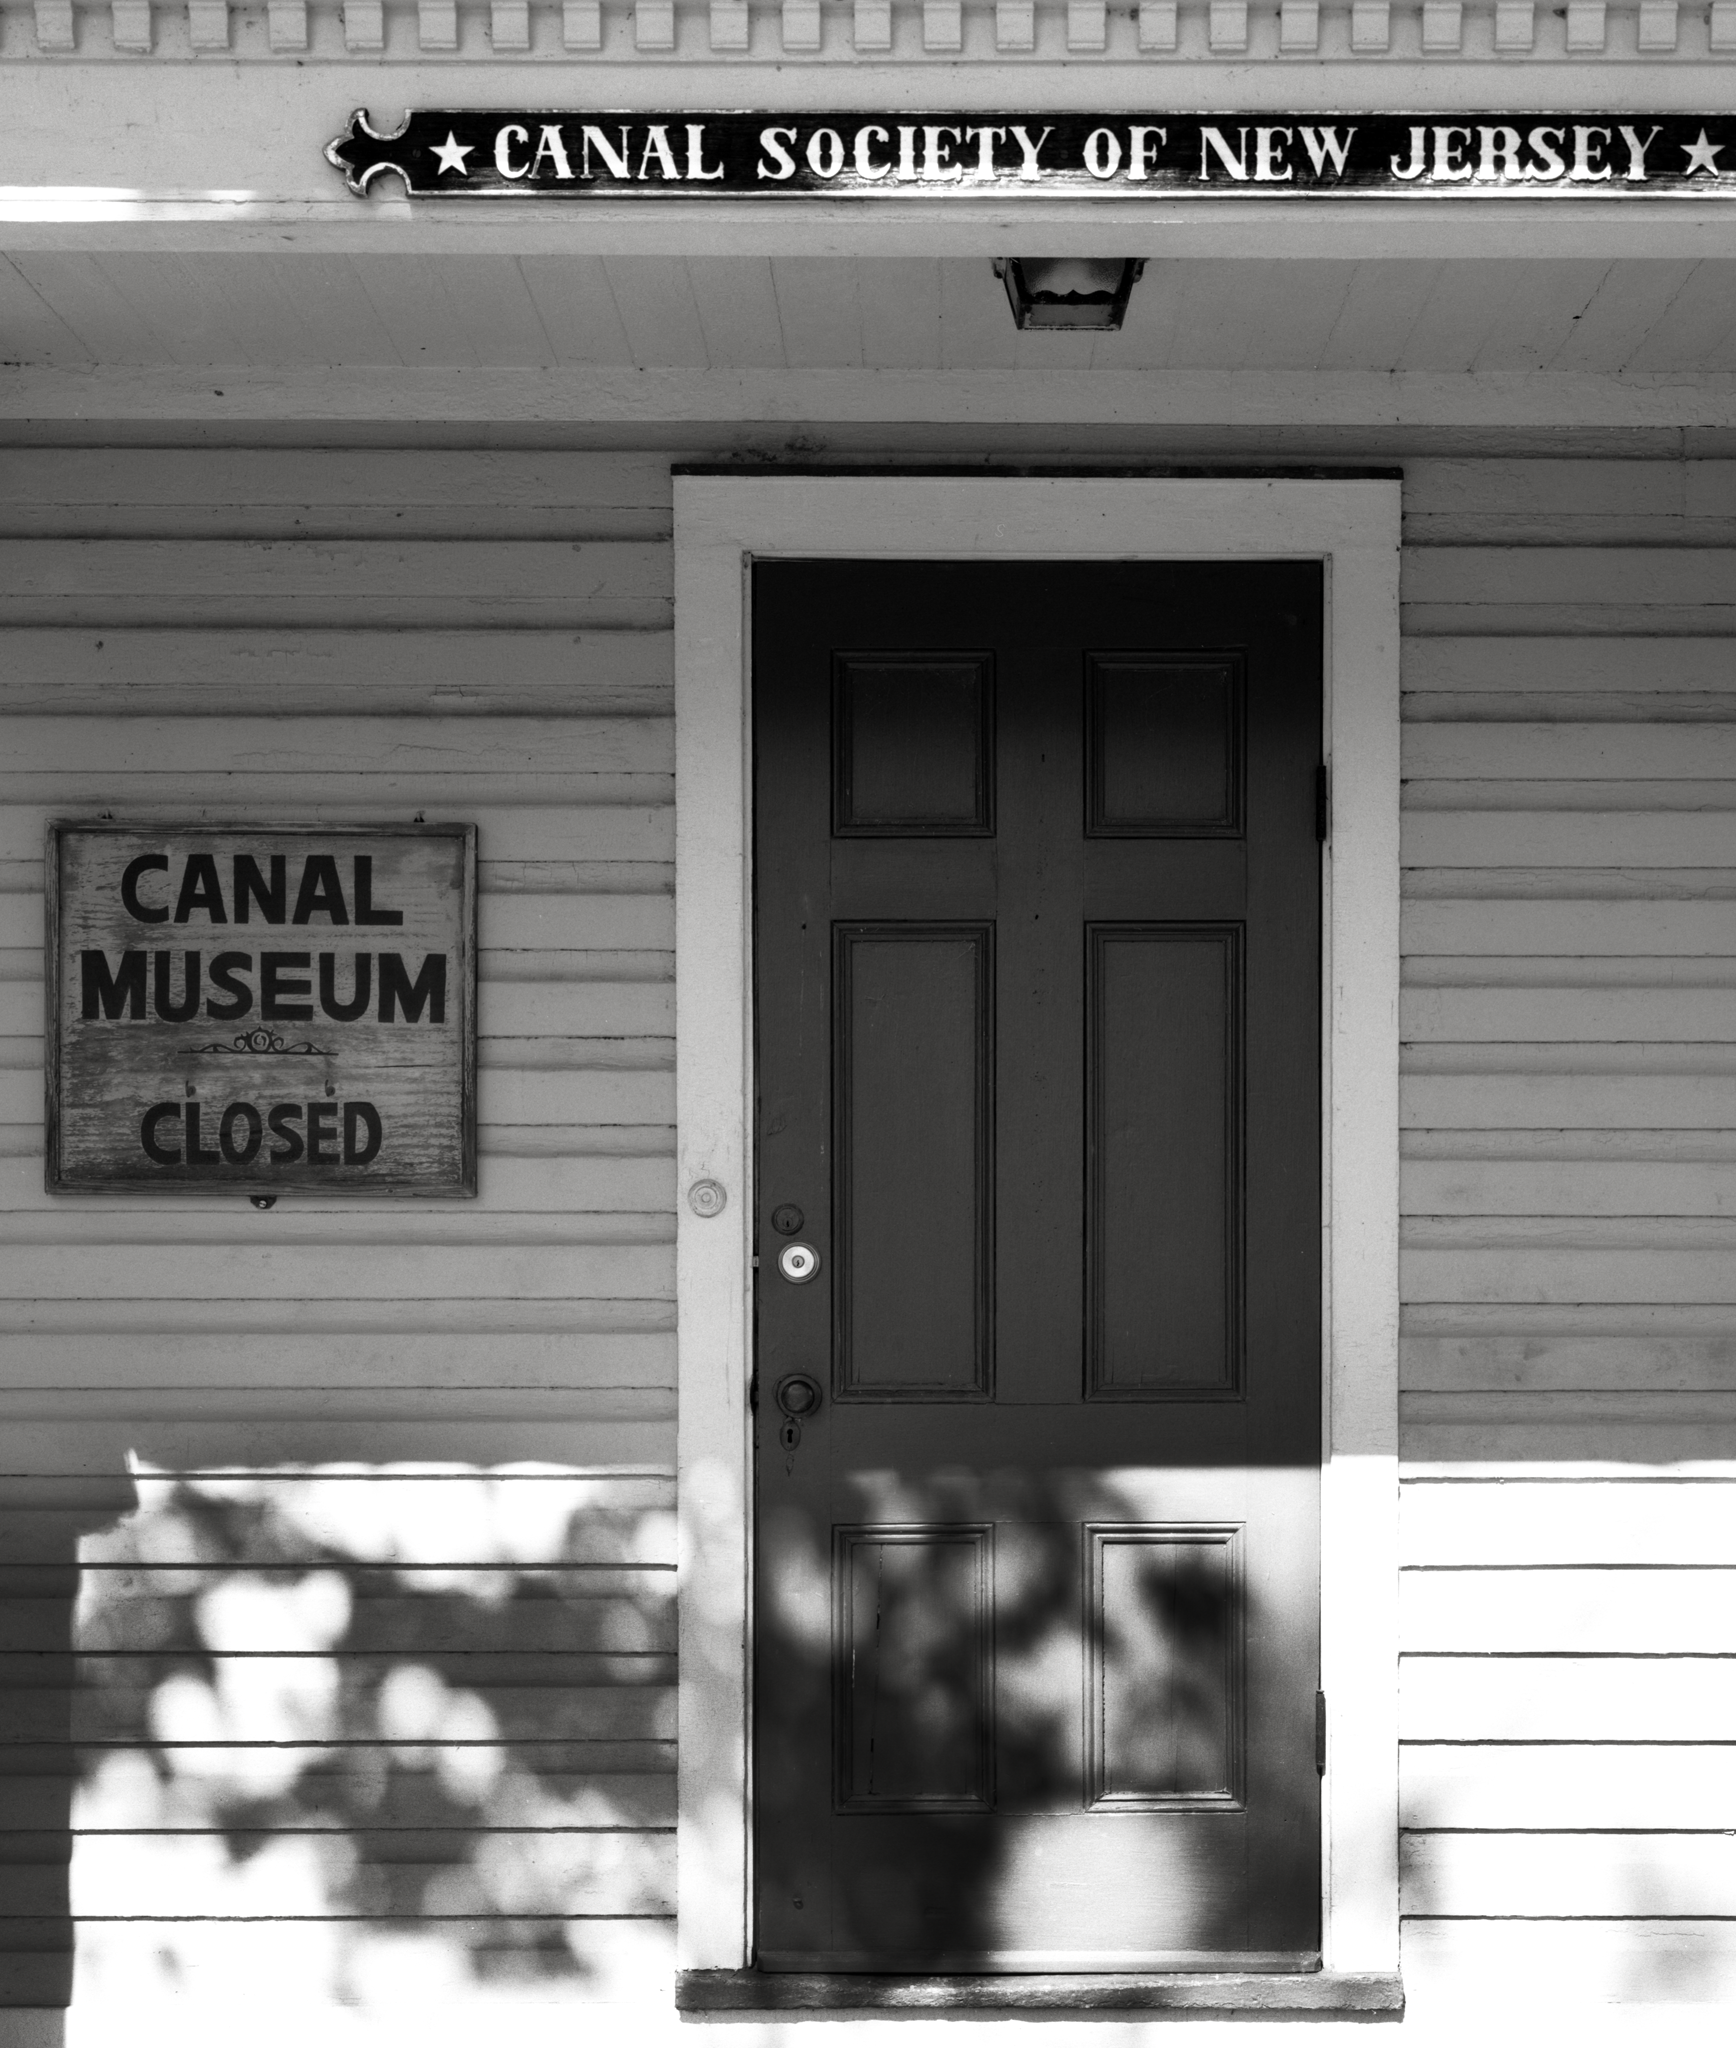 4x5_for_365_project_0292_Waterloo_Village_canal_society_of_nj_door.png